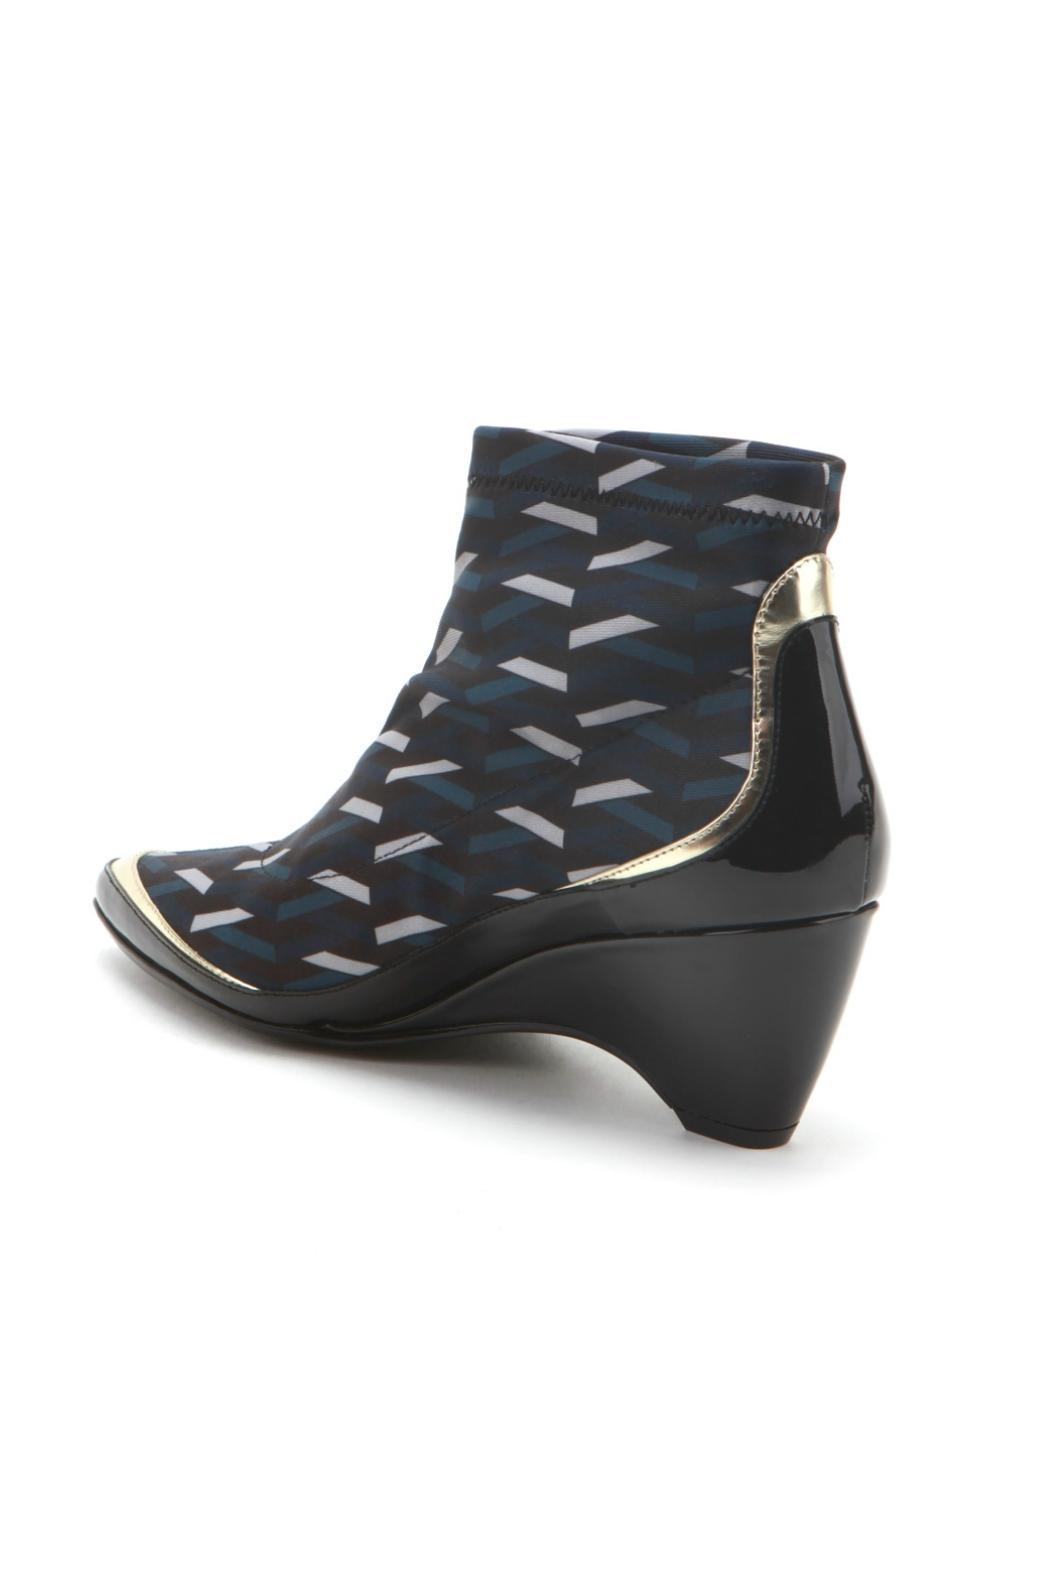 United Nude Patterned Bootie - Side Cropped Image